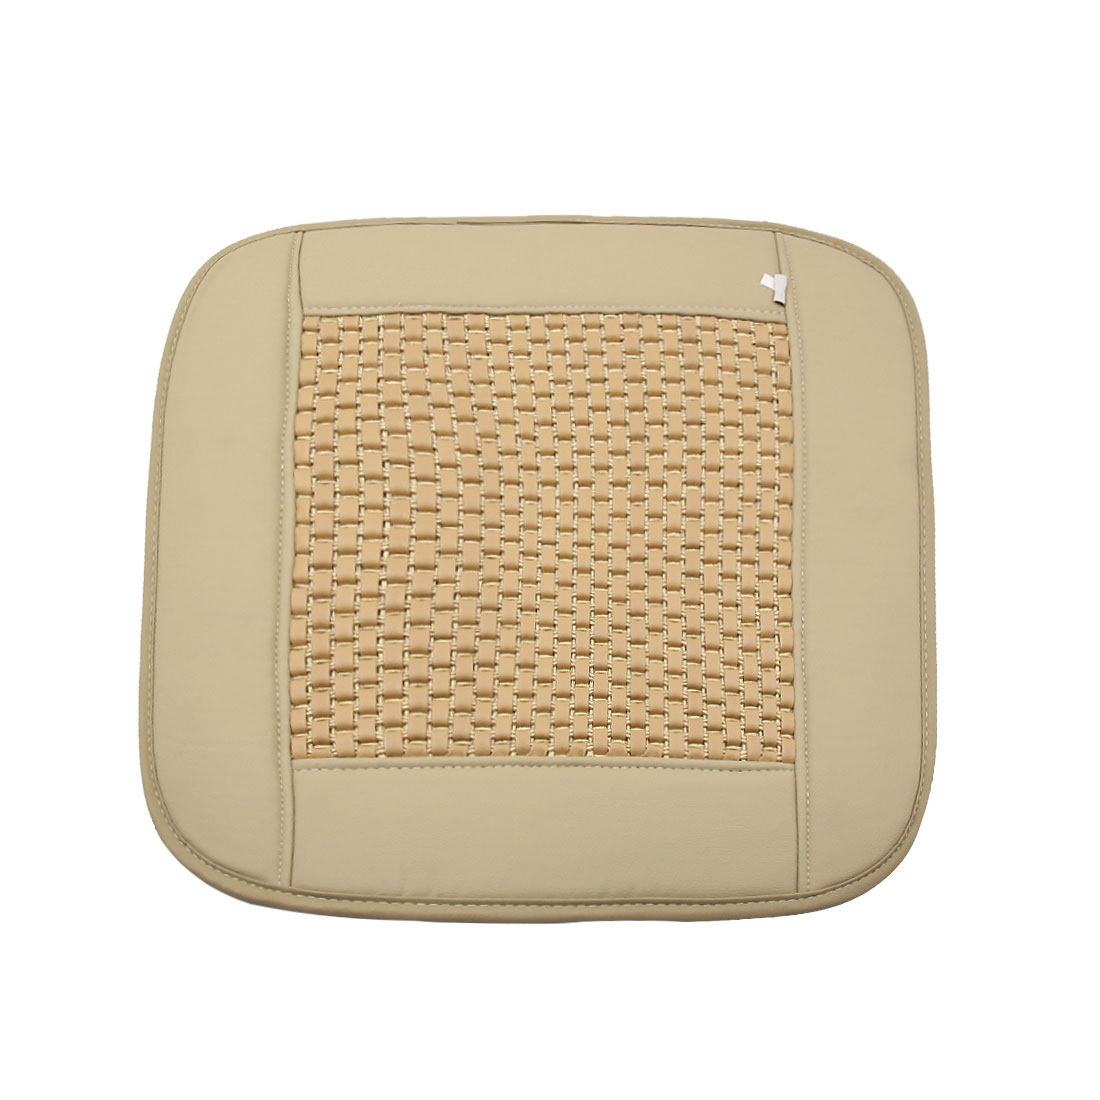 Beige Square Shaped PU Leather Seat Cushion Cover Pad for Car Automobile